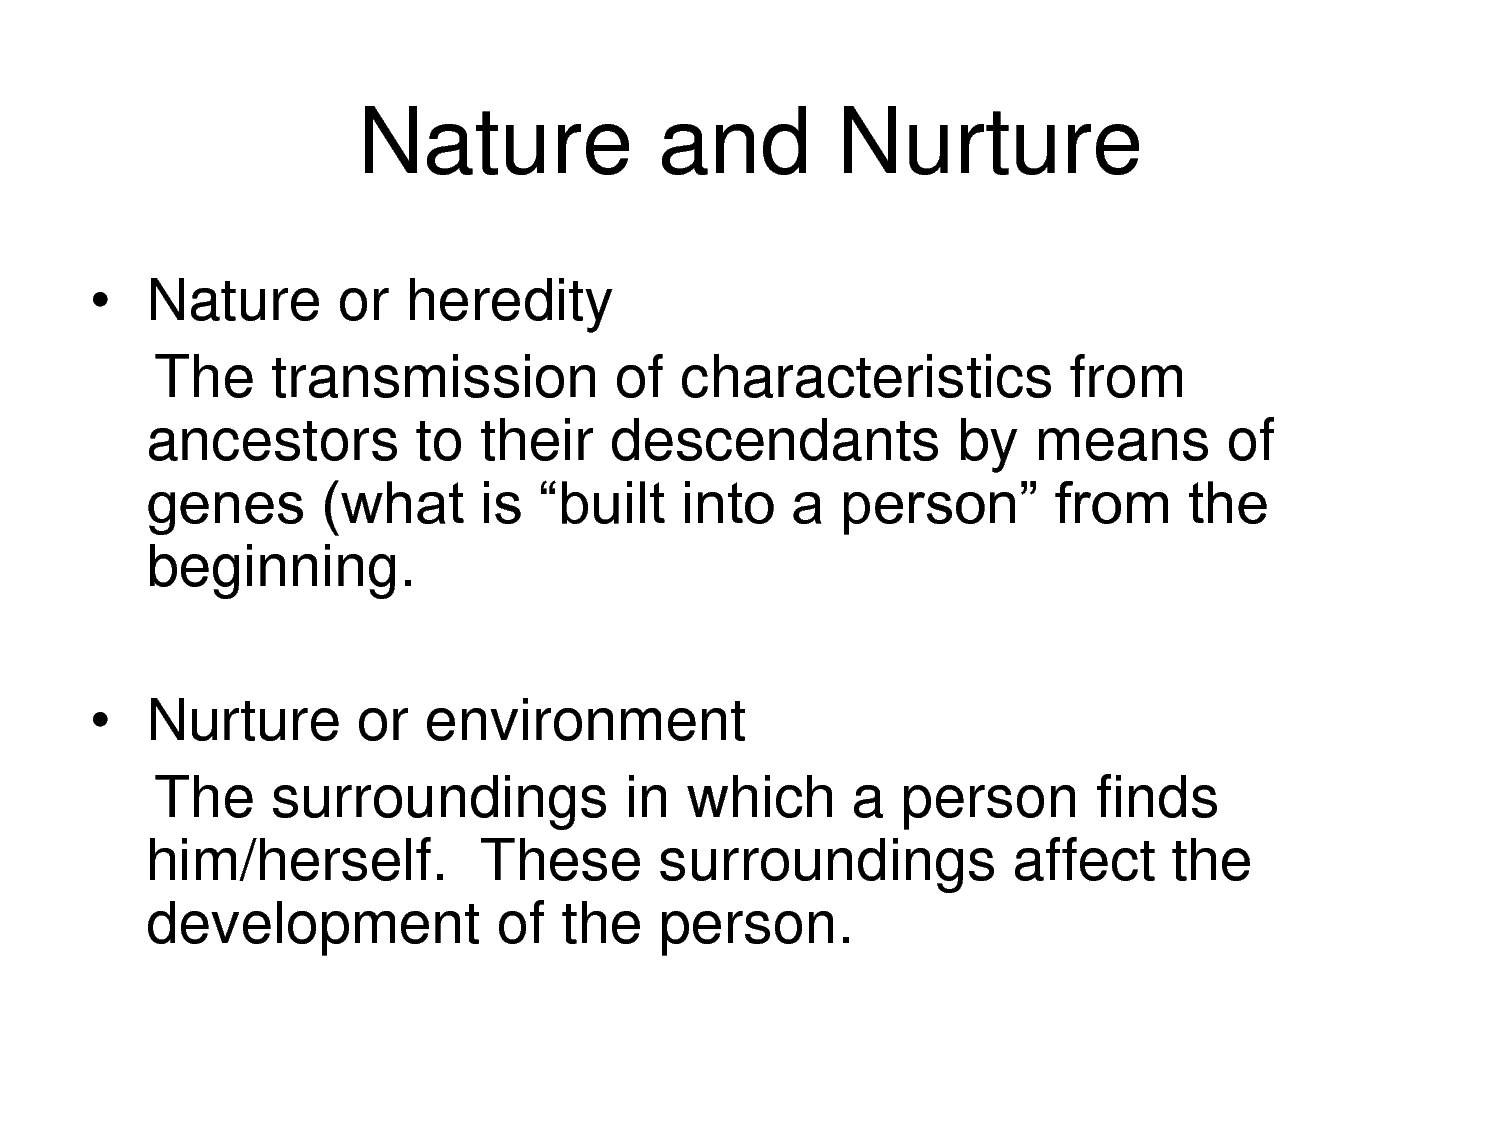 nurture essay essay people essay nature essay writing nature  essay nature vs nurture debate essay on nature vs nurture empiricism vs rationalism essay on nature